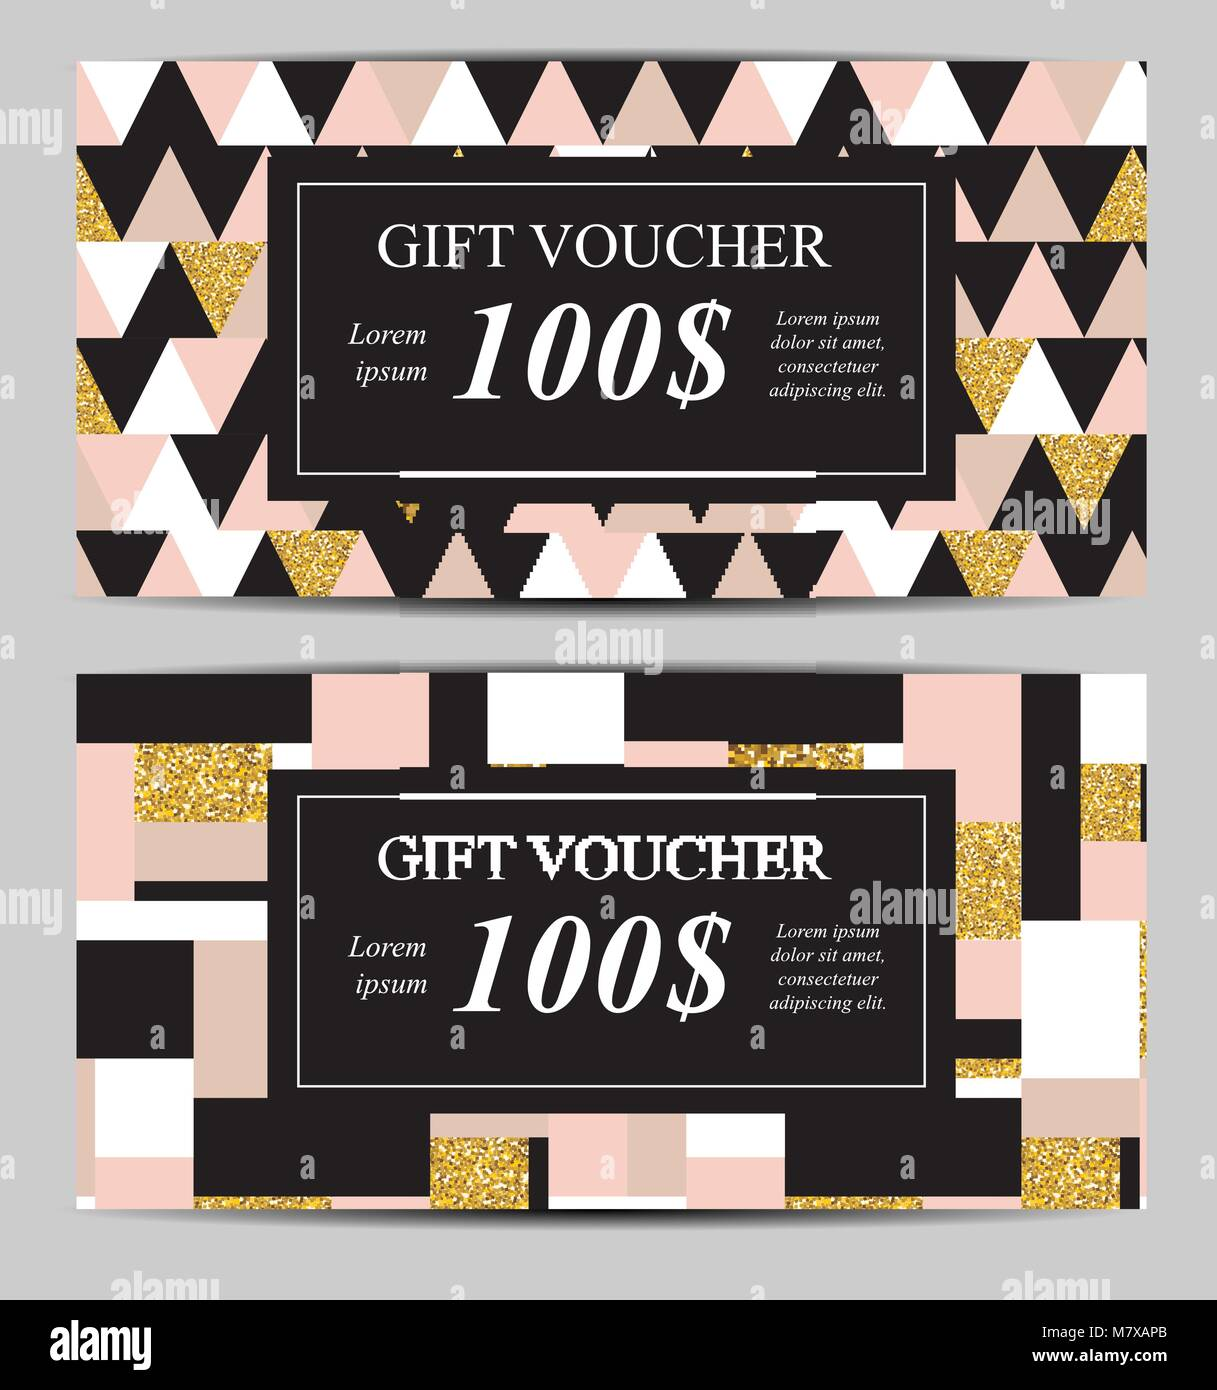 Gift Vouchers Stock Photos & Gift Vouchers Stock Images - Alamy